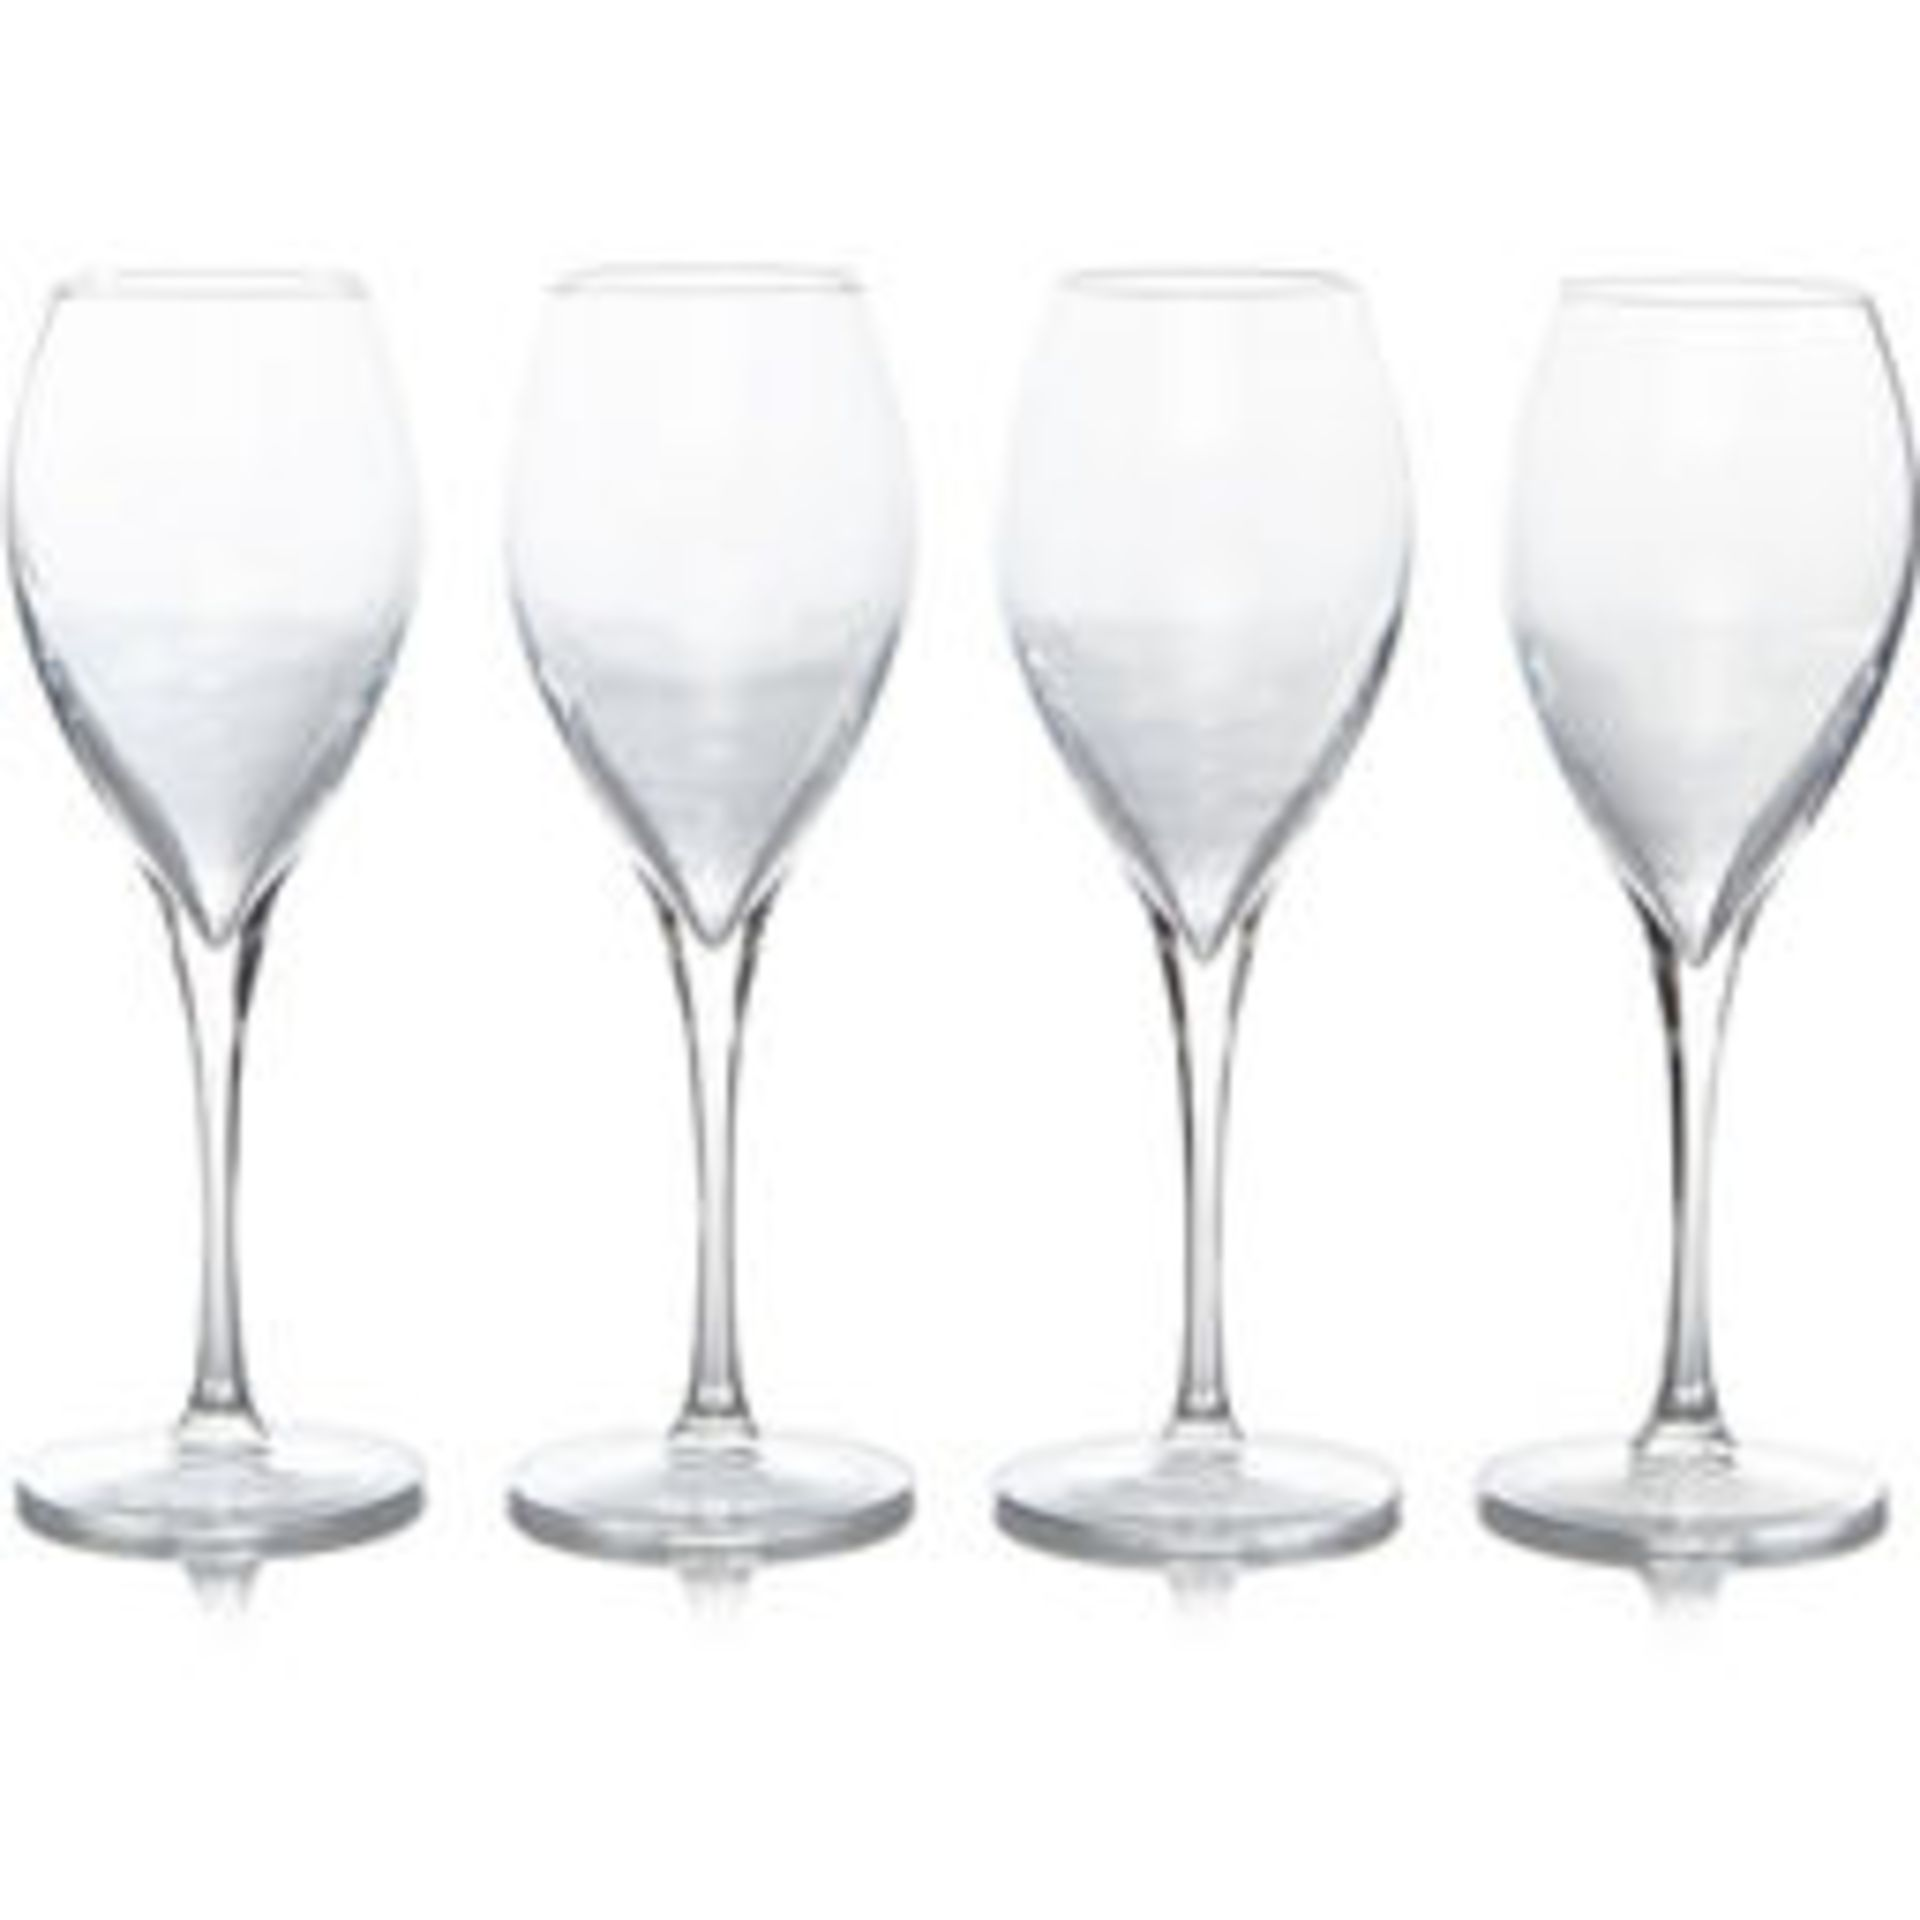 Glass Lot – Approx. 65x Items. To Include 16x Wine Glasses. 3x Large Gin Glasses. 12x Soda Glasses.